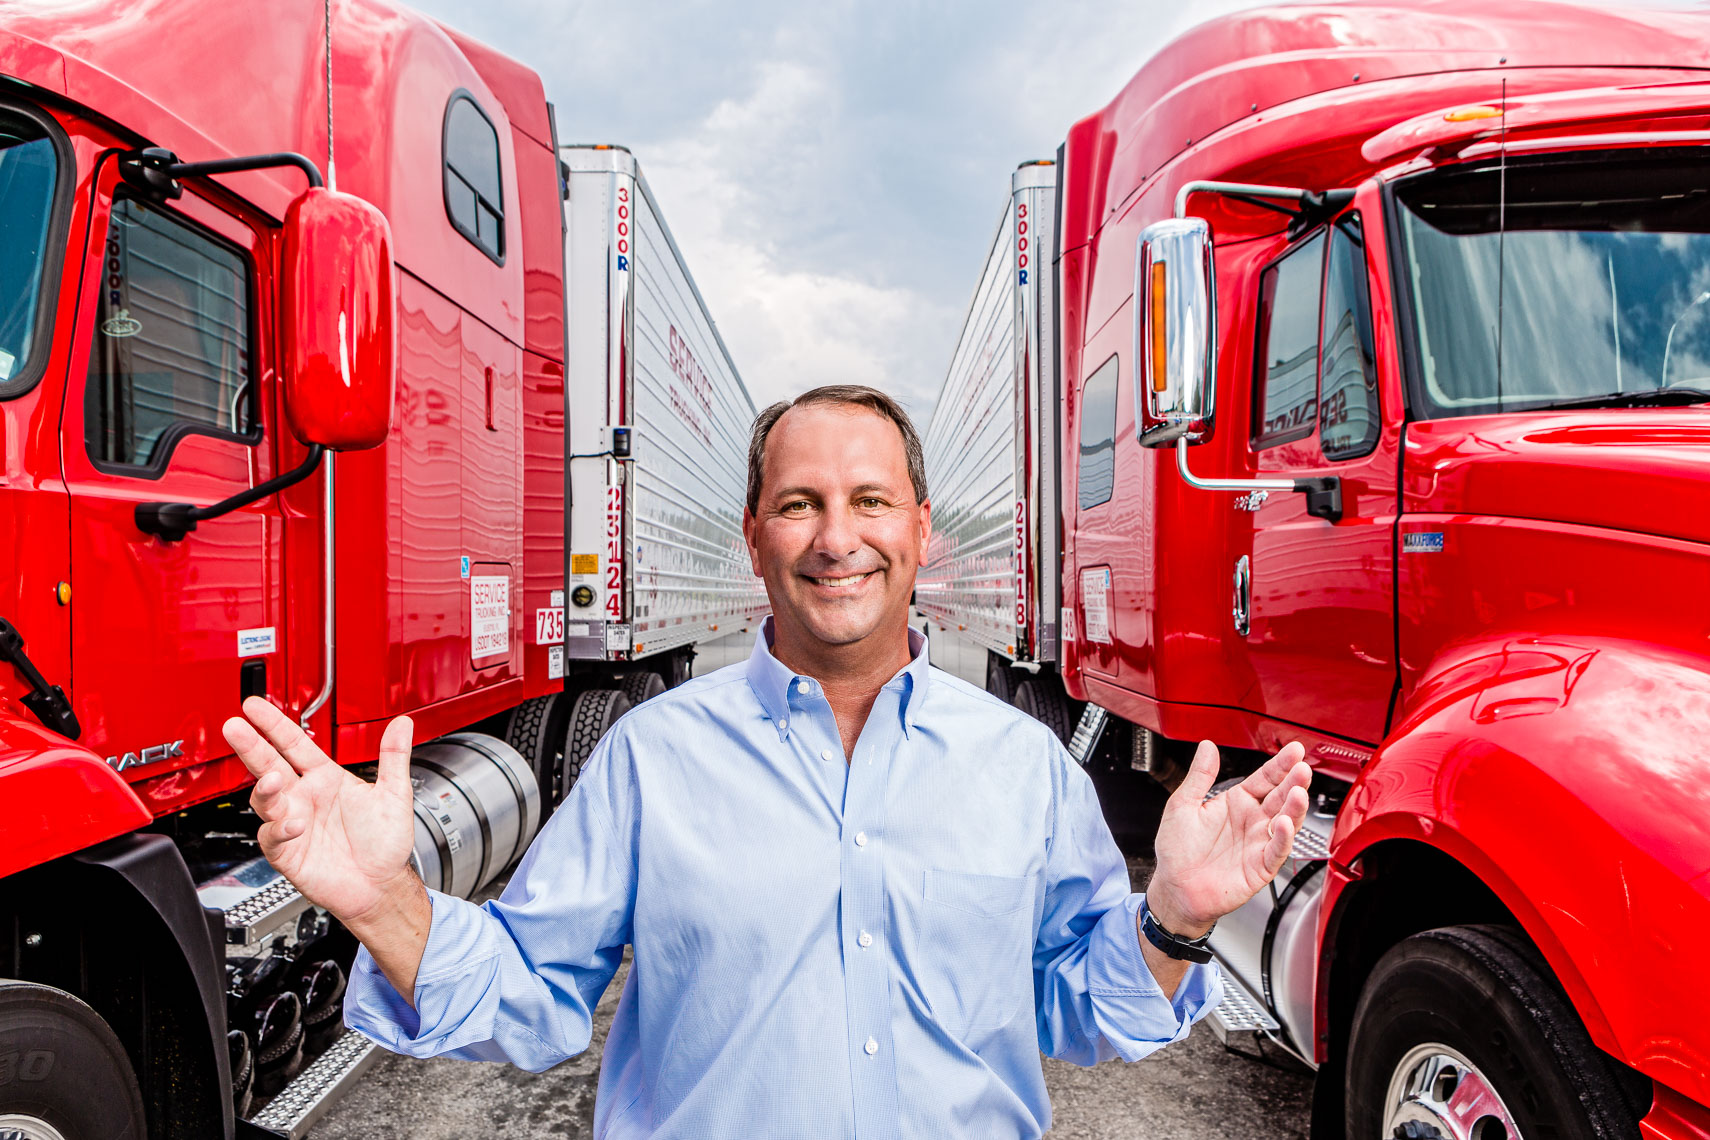 Executive Portrait at a trucking company